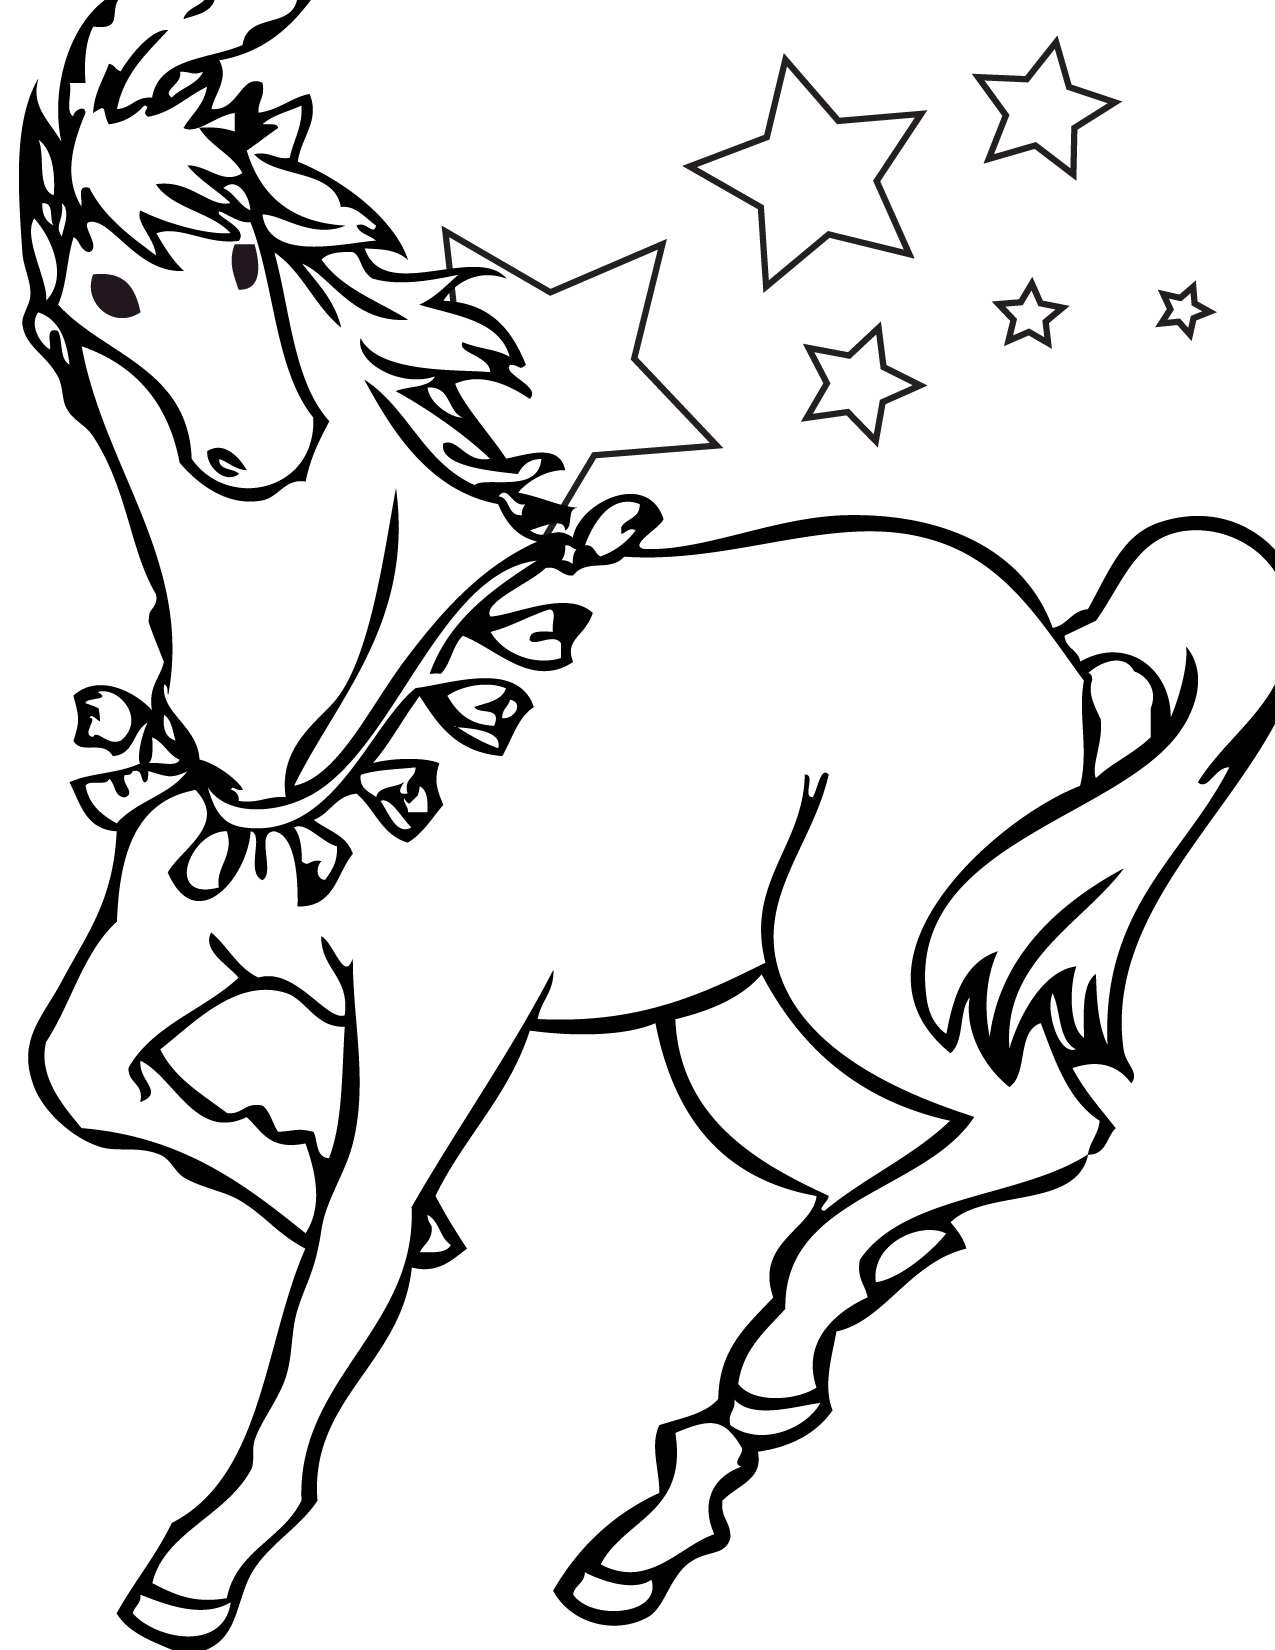 horse pages to color hand drawn horse for adult coloring page art therapy stock to color pages horse